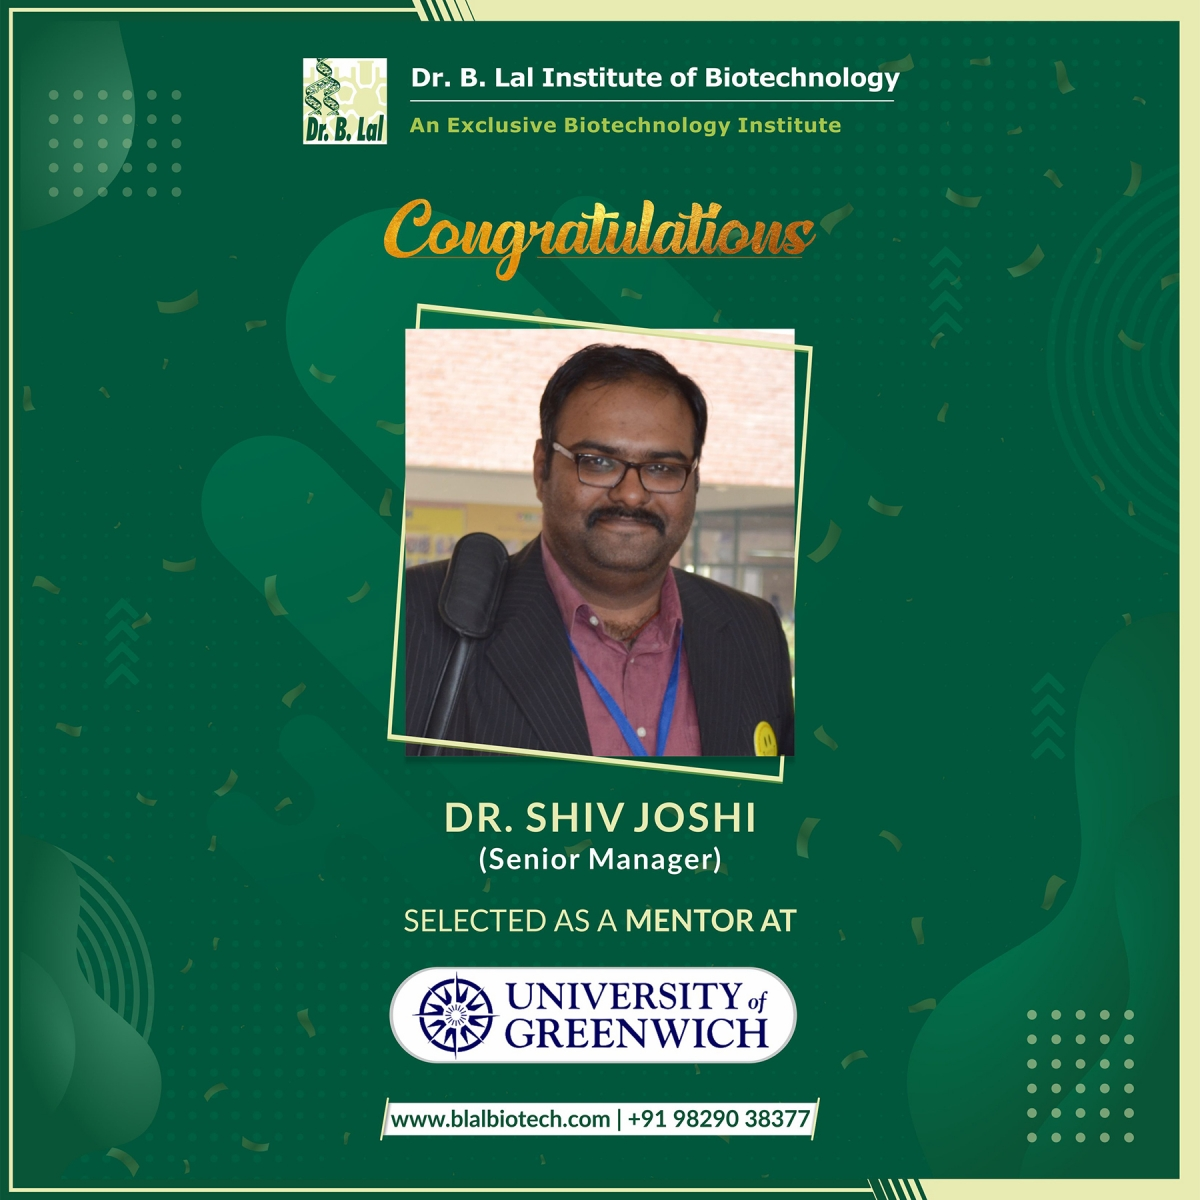 Dr. Shiv Joshi selected as a Mentor at the University of Greenwich, London